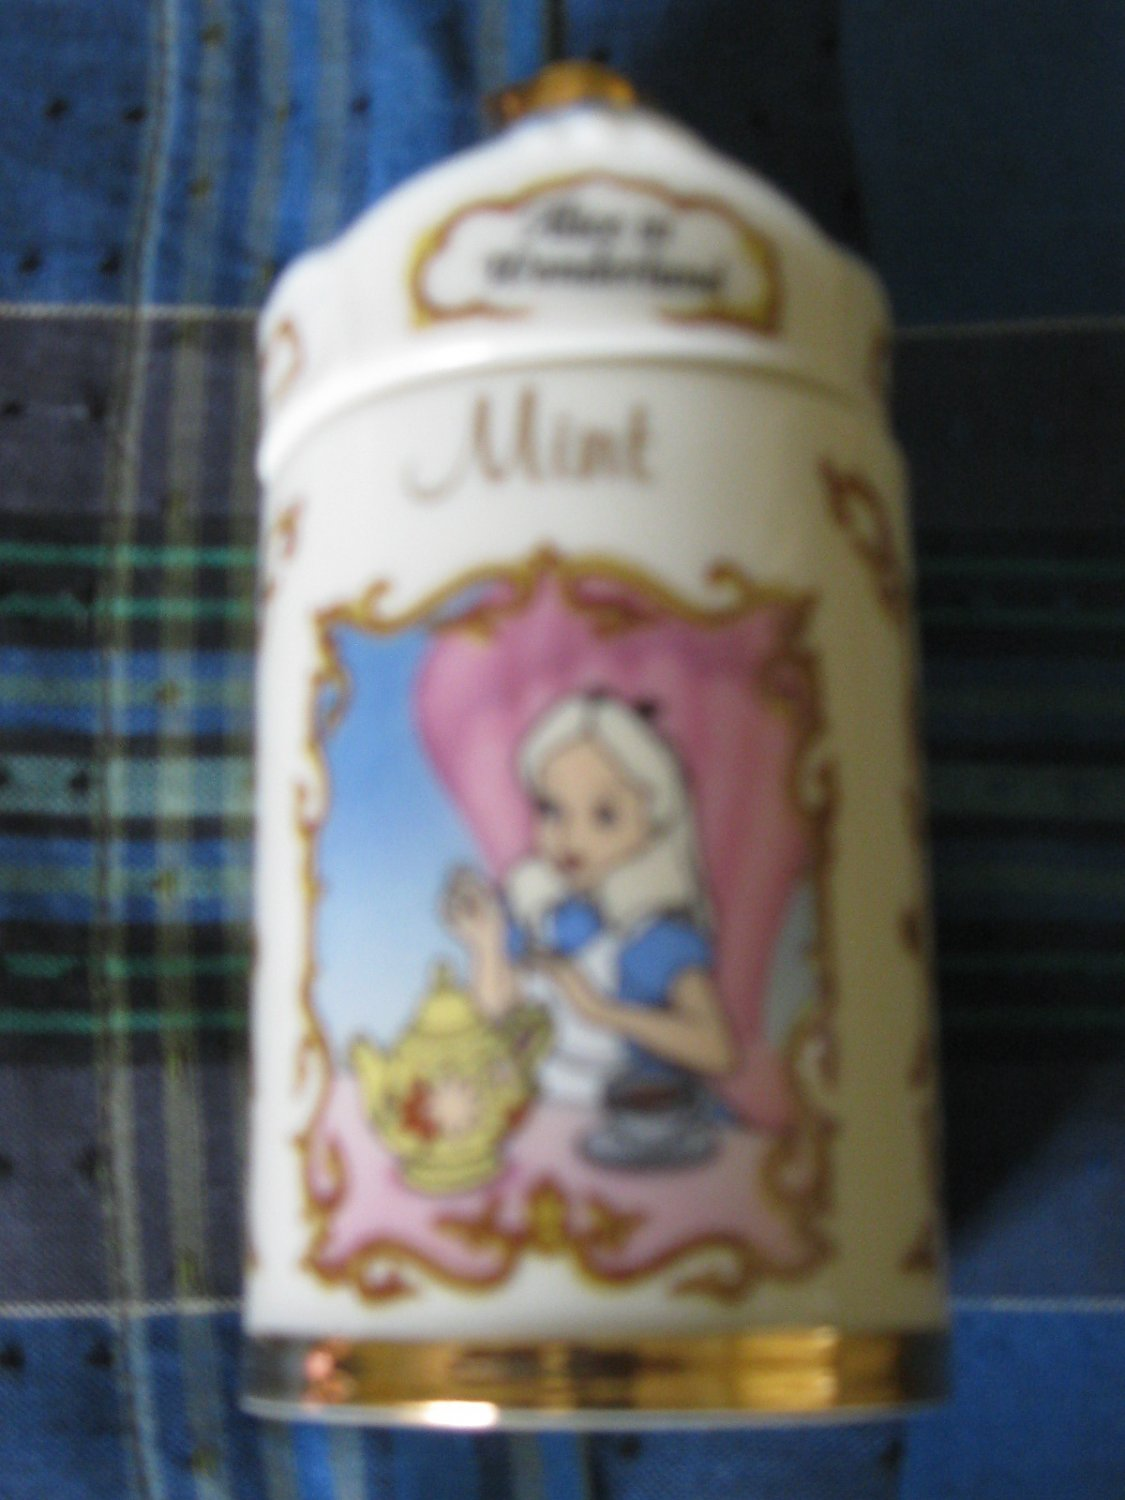 Awesome Disney Alice in Wonderland Mint Spice Jar Lenox 1995 Collection